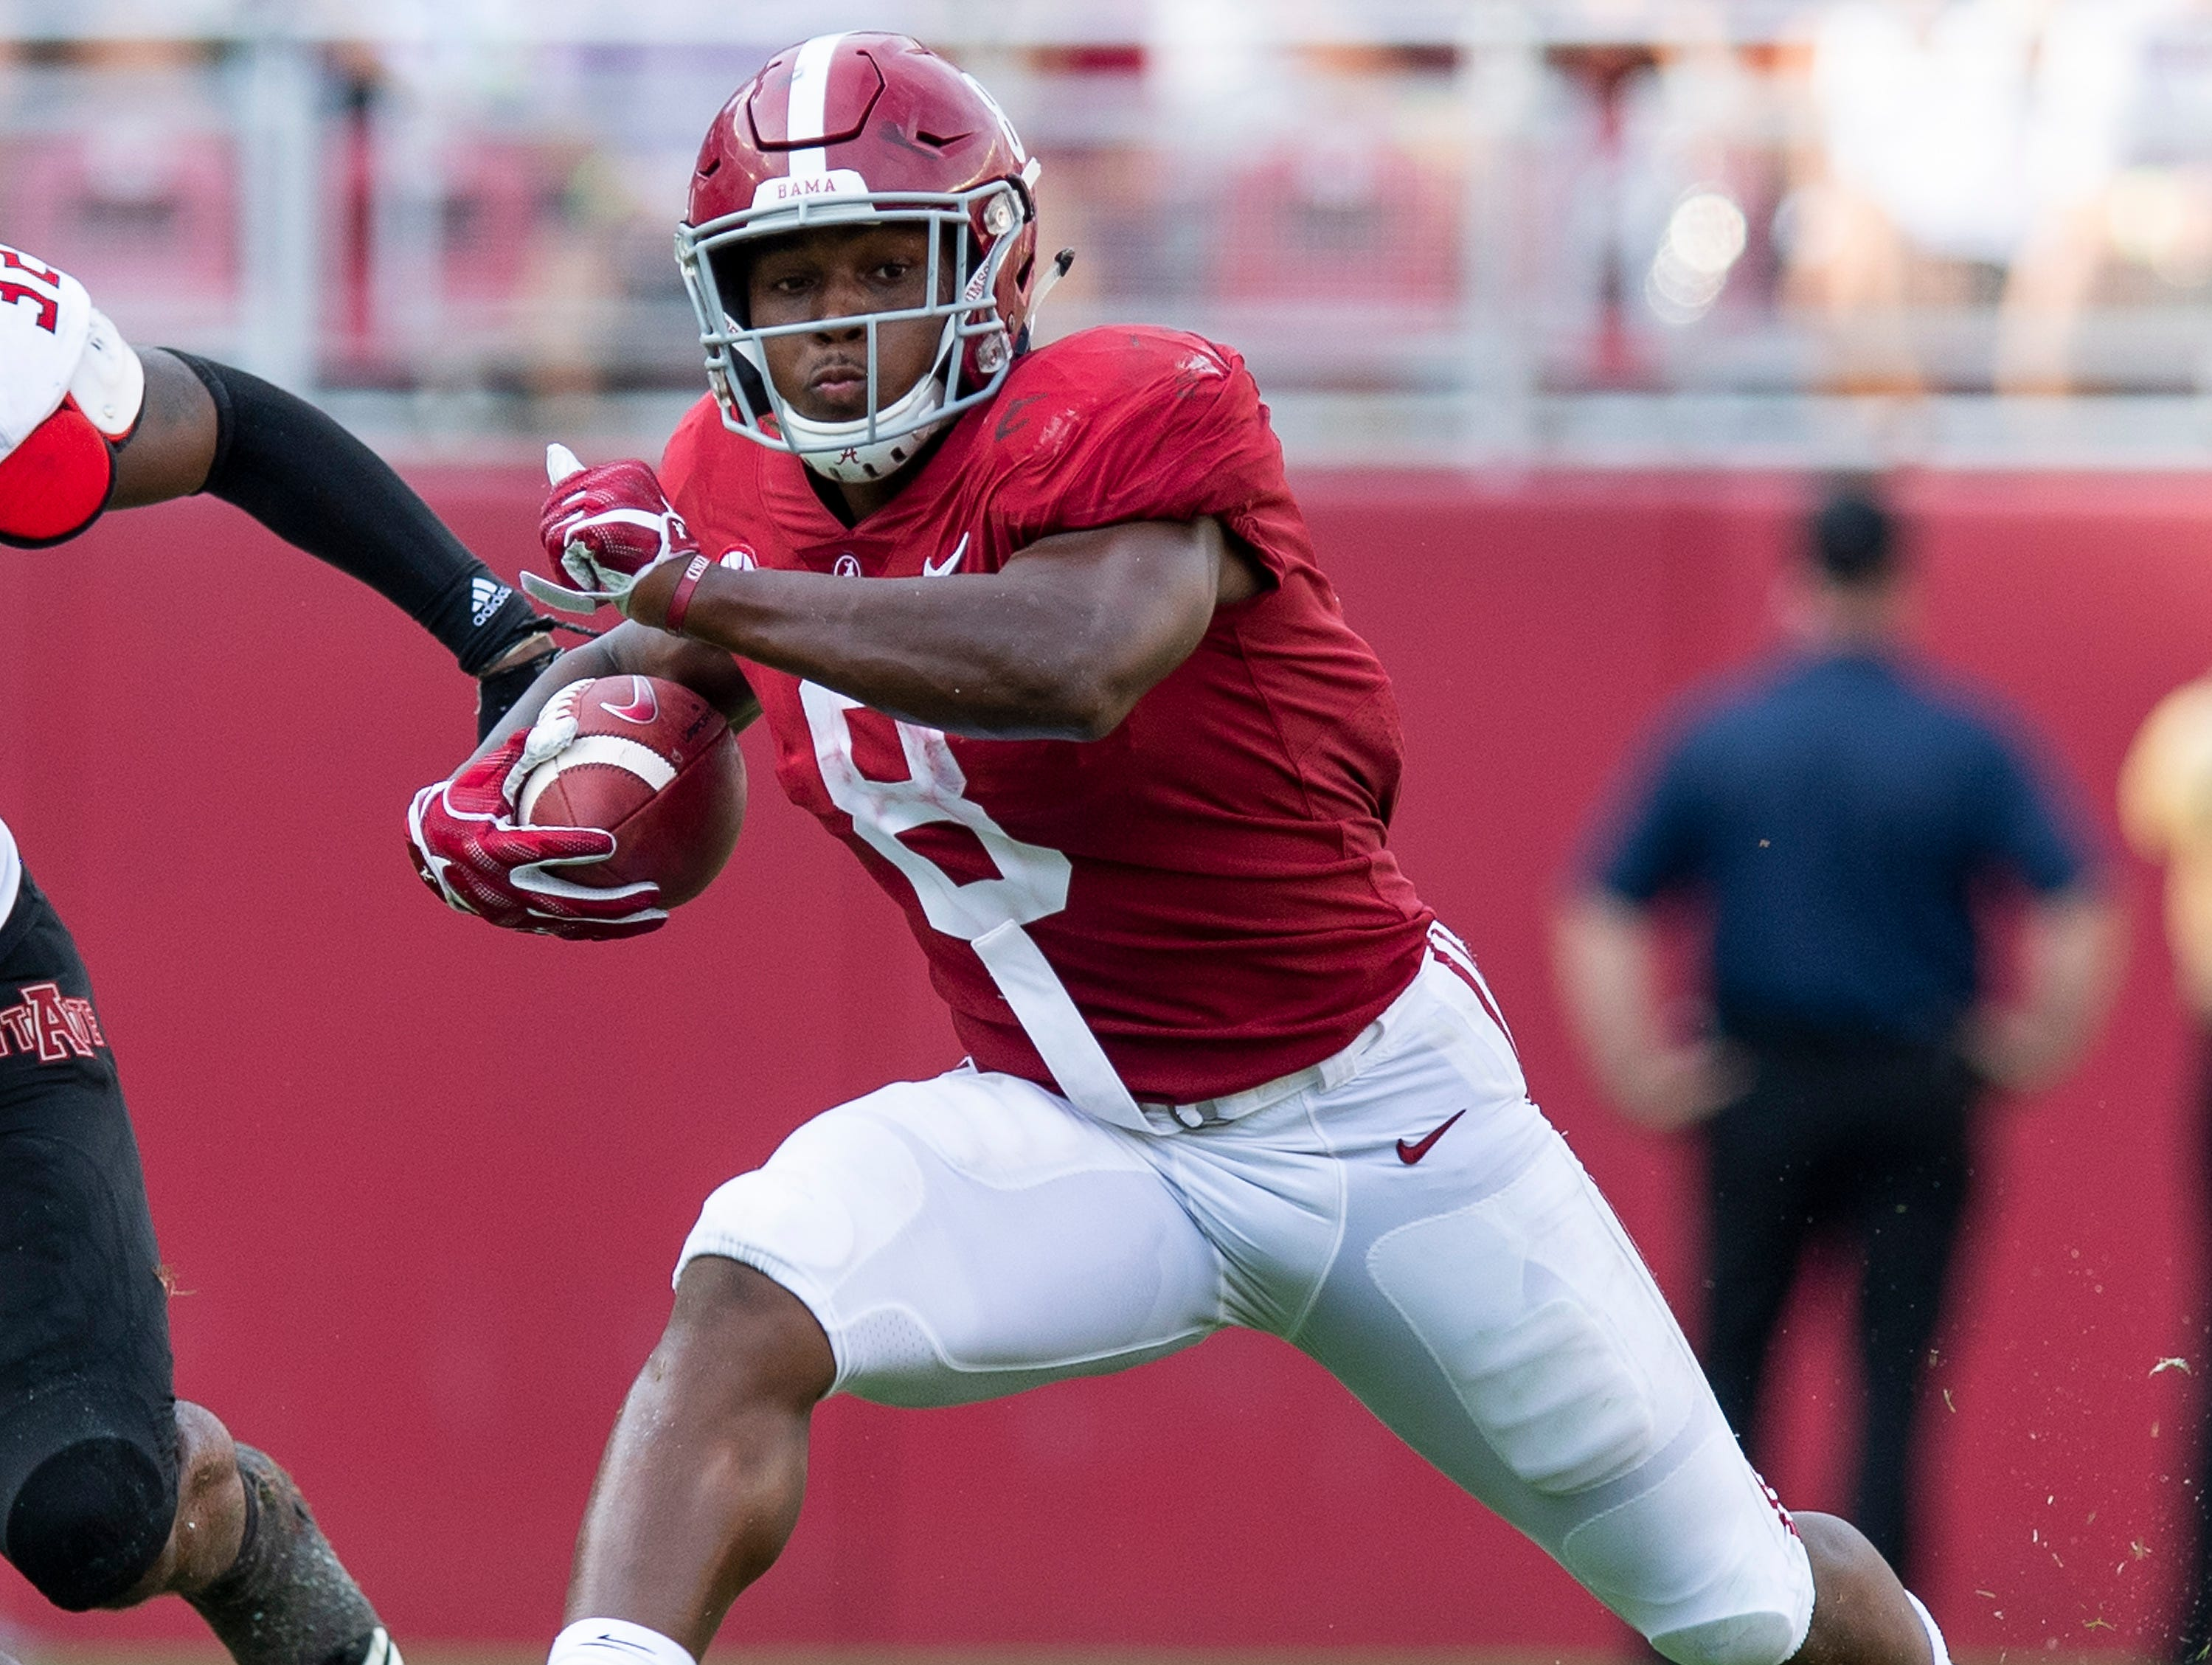 Alabama running back Josh Jacobs (8) runs against Arkansas State in second half action at Bryant Denny Stadium in Tuscaloosa, Ala., on Saturday September 8, 2018.